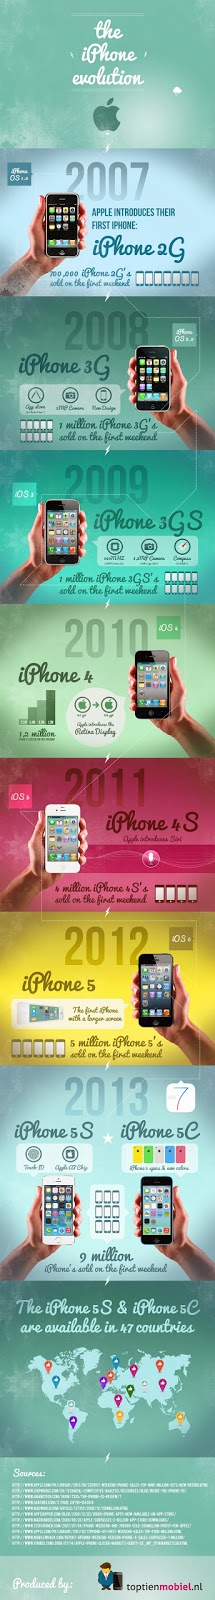 http://itechnow.com/infographic-the-evolution-of-the-iphone/